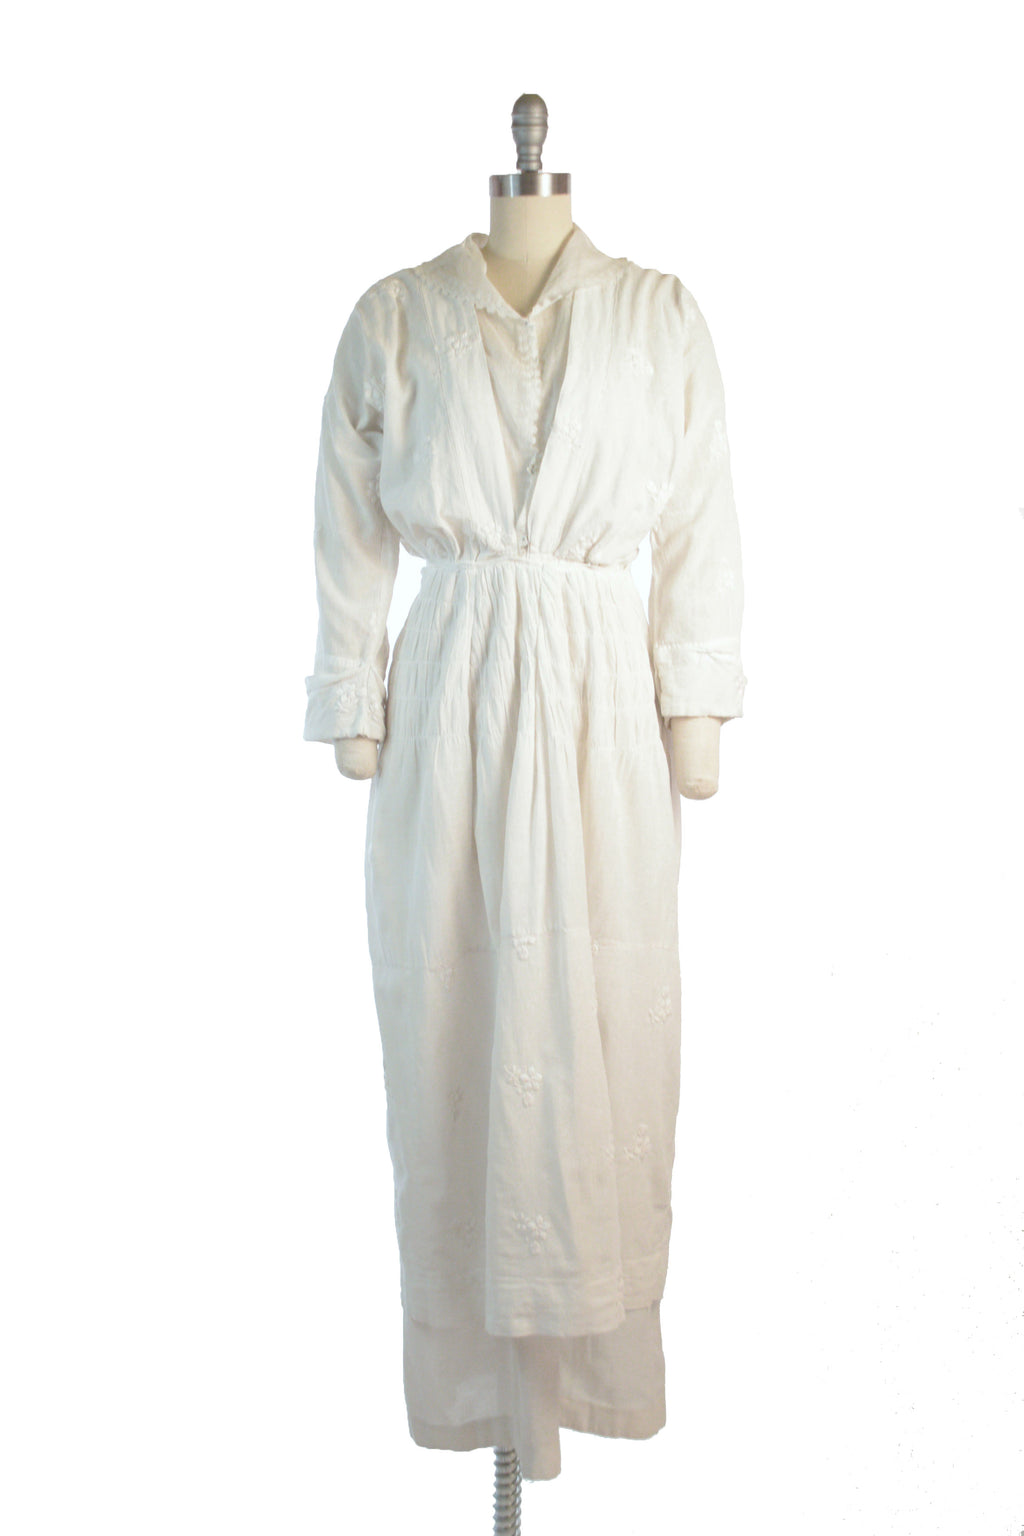 Strong and Wearable 1910s Dress of Embroidered White Muslin with Built in Blouse of Lingerie Cotton